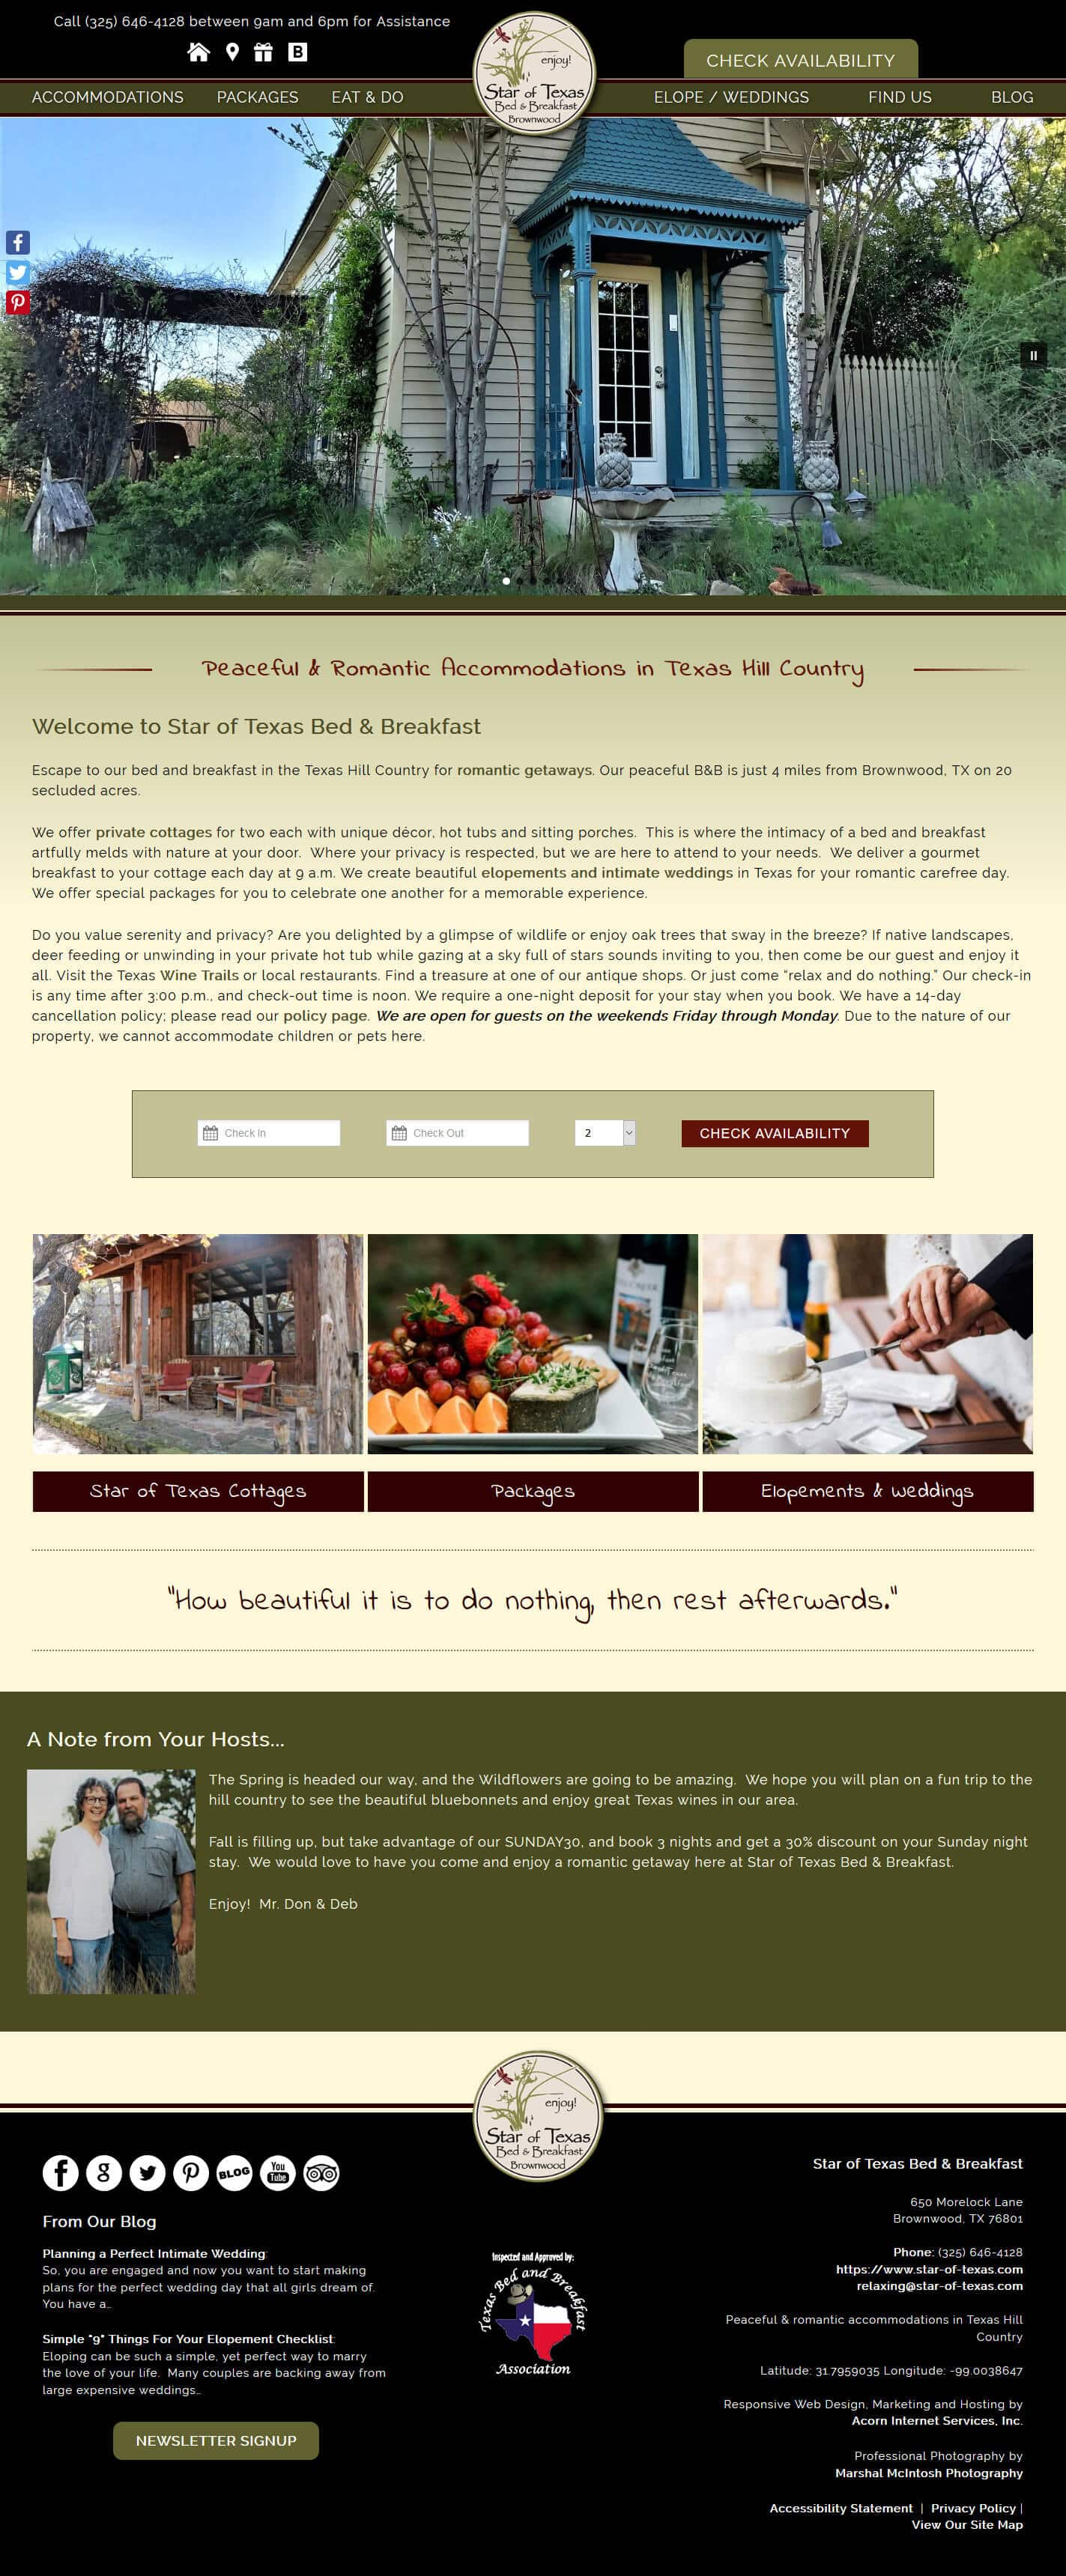 Home page of Star of Texas Bed & Breakfast website